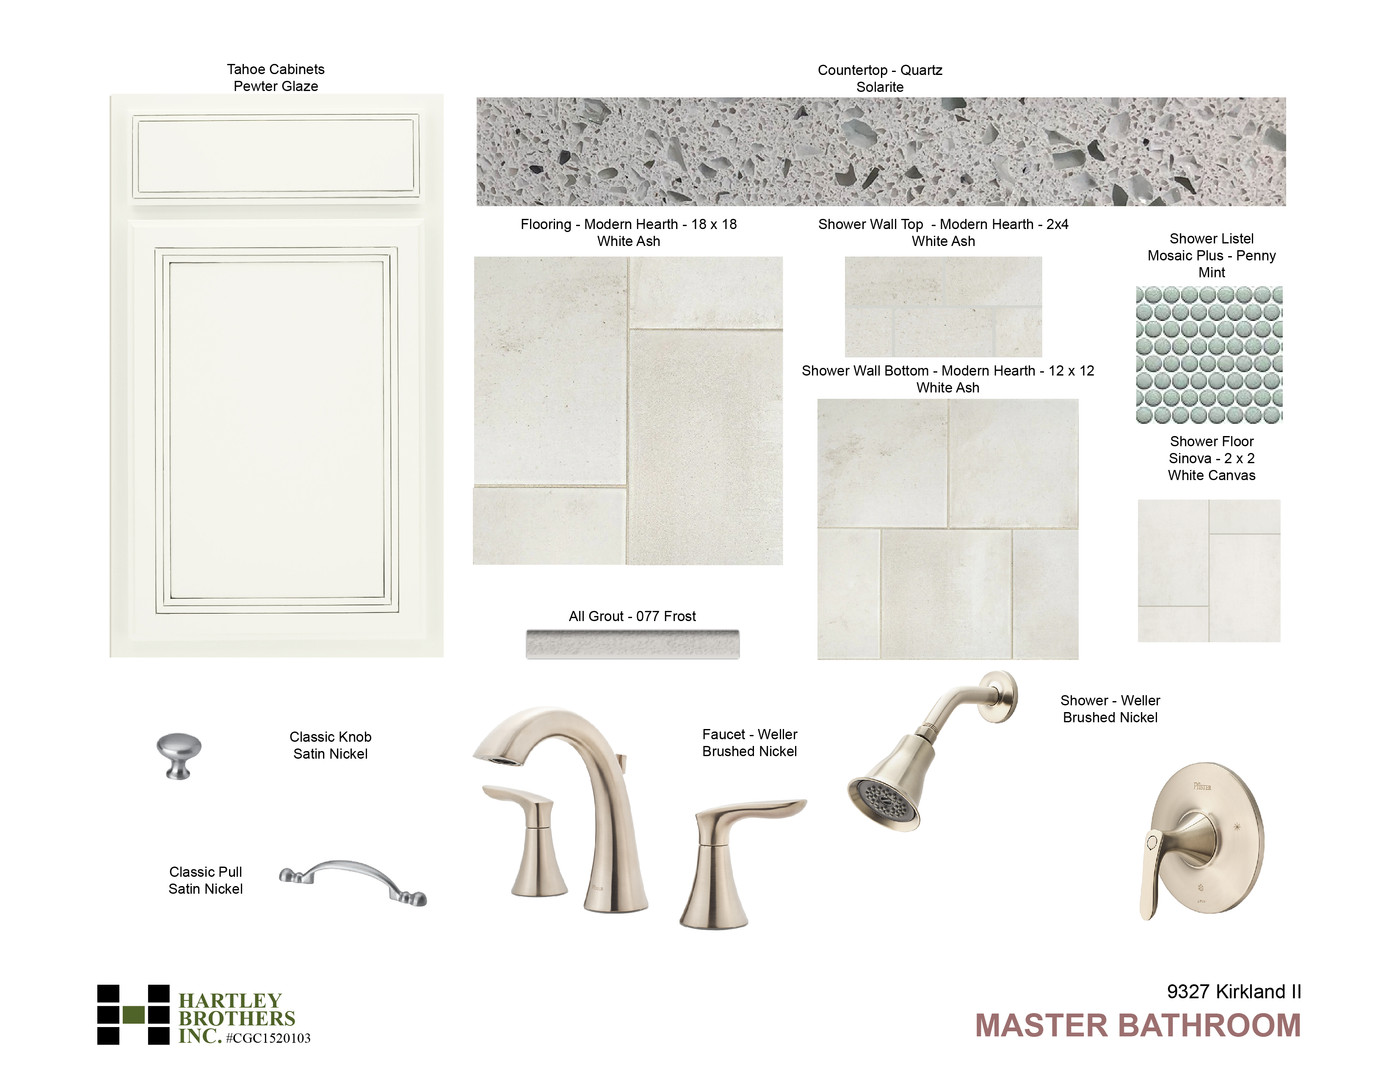 9327 Master Bathroom